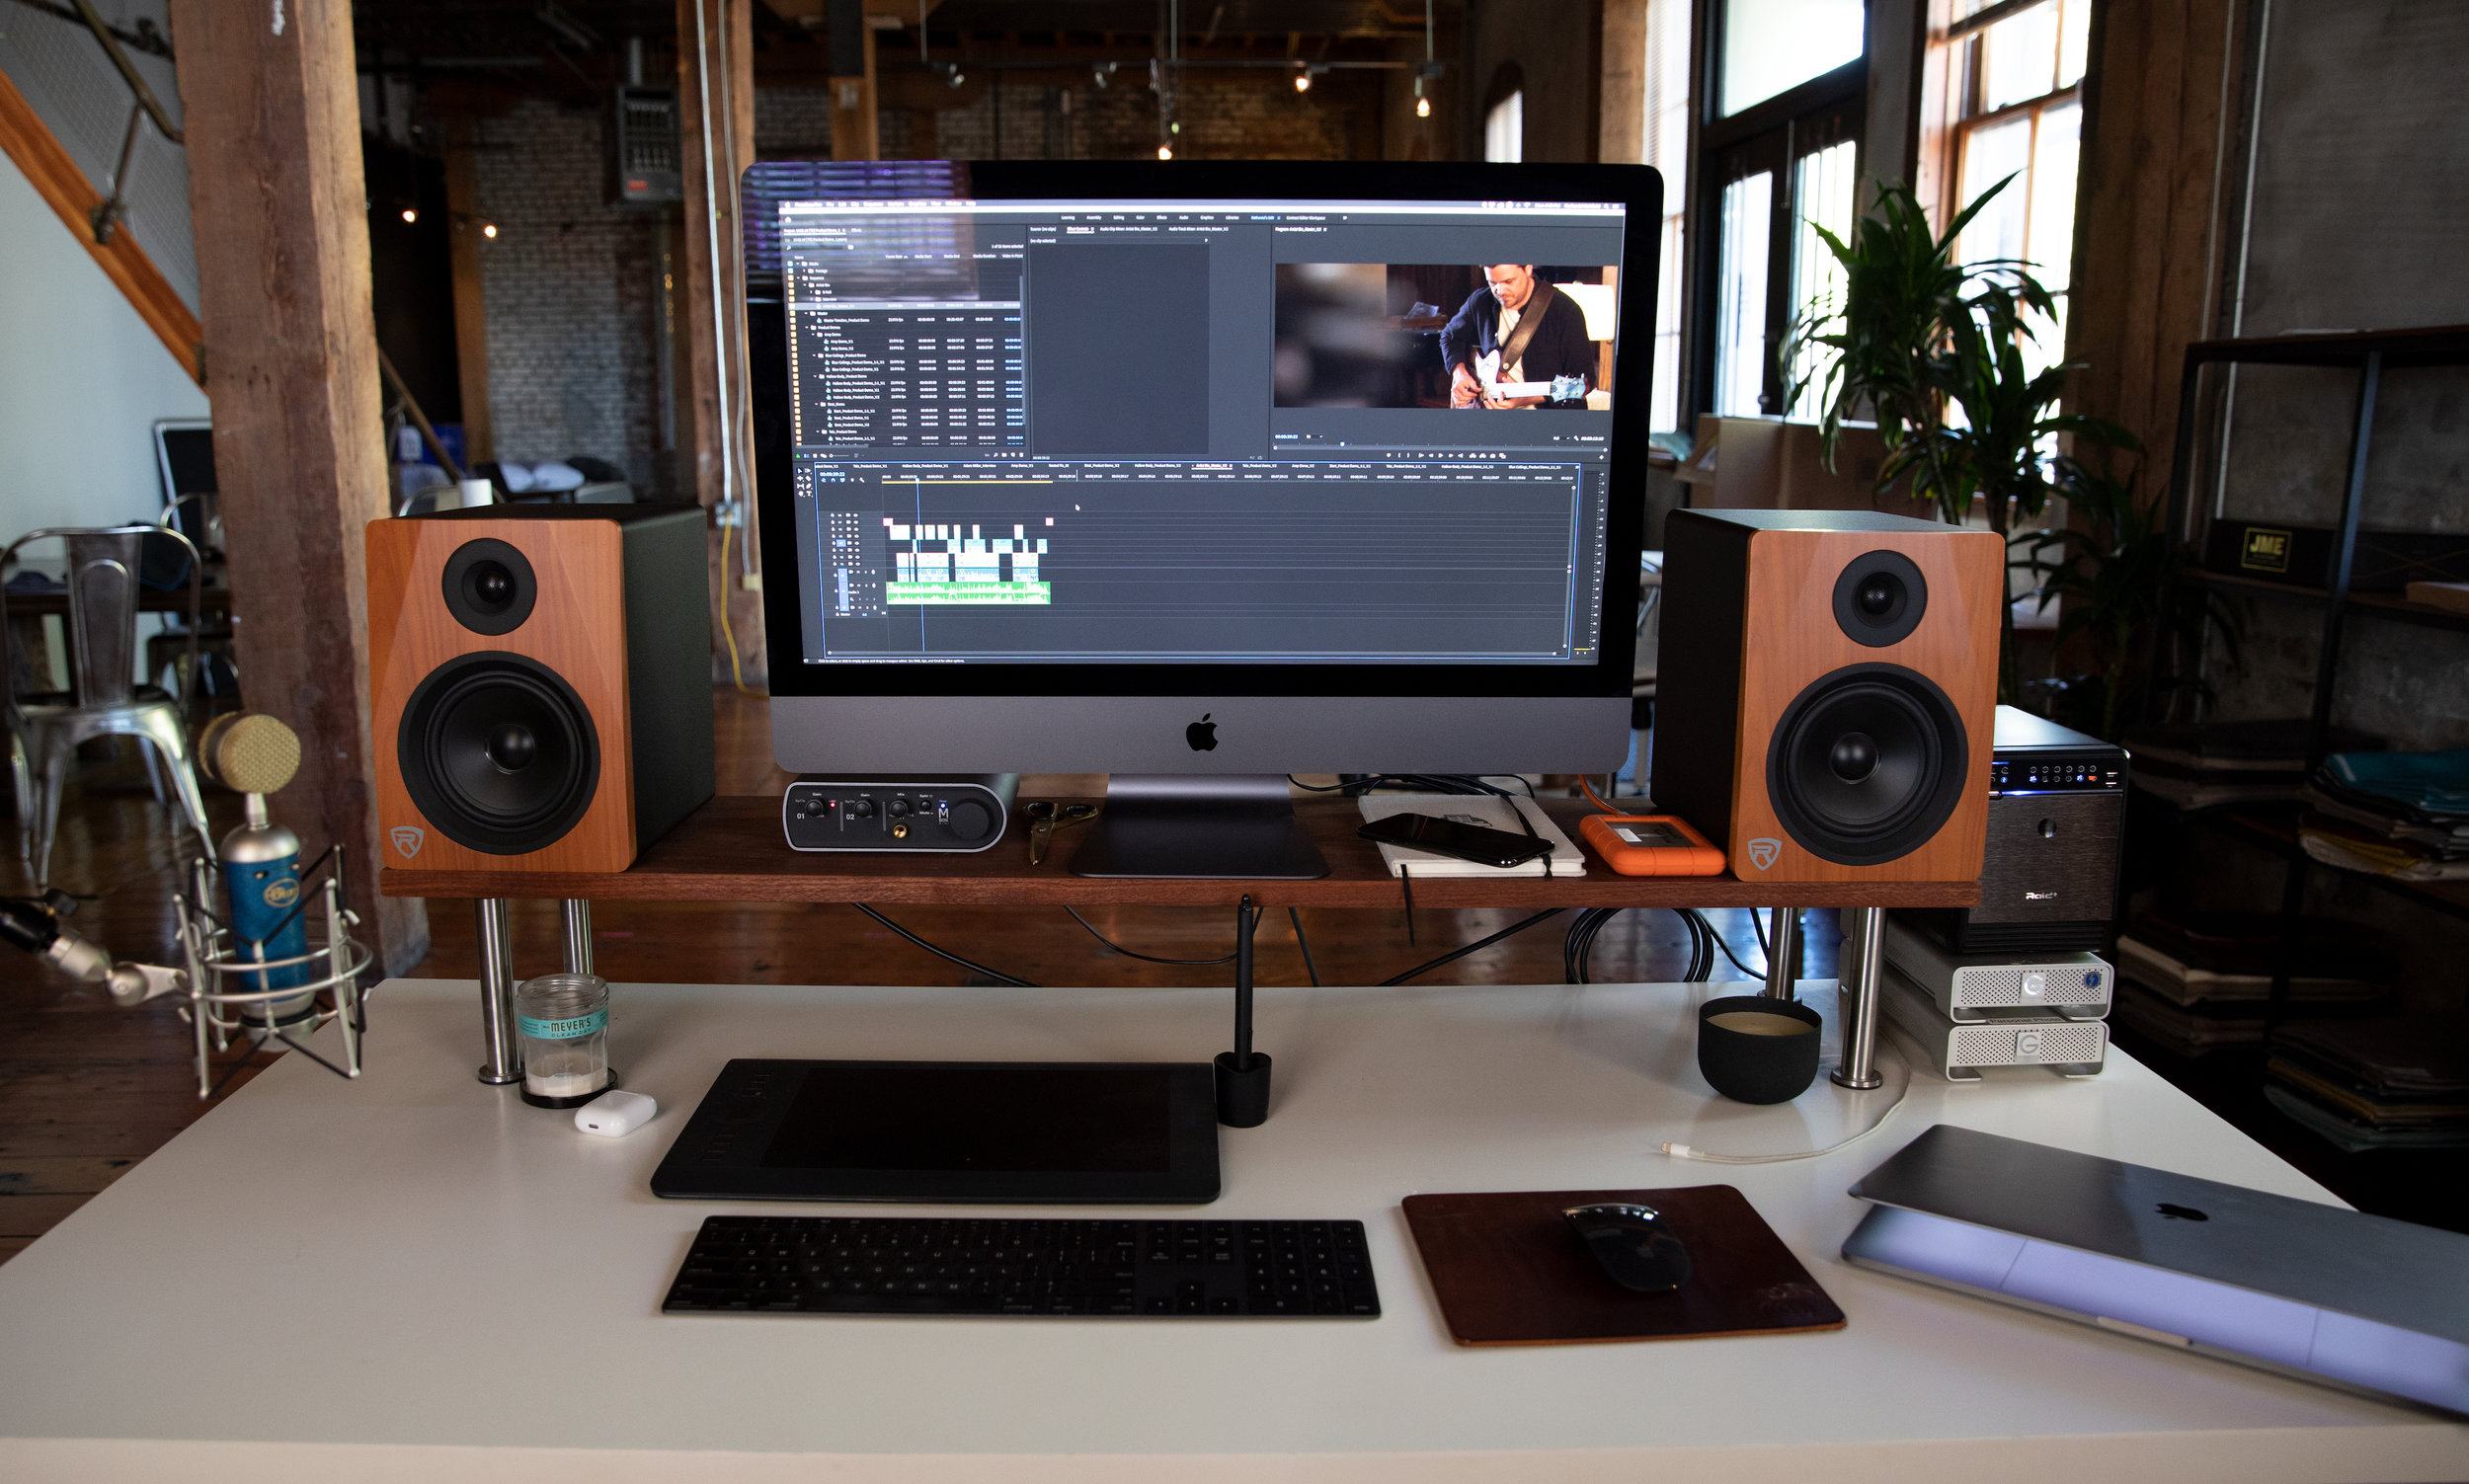 Edit Station - My office has multiple edit stations but this setup is the most used when it comes to working on day to day projects. I have a background in audio engineering and handle all post production audio and video work from this one station.